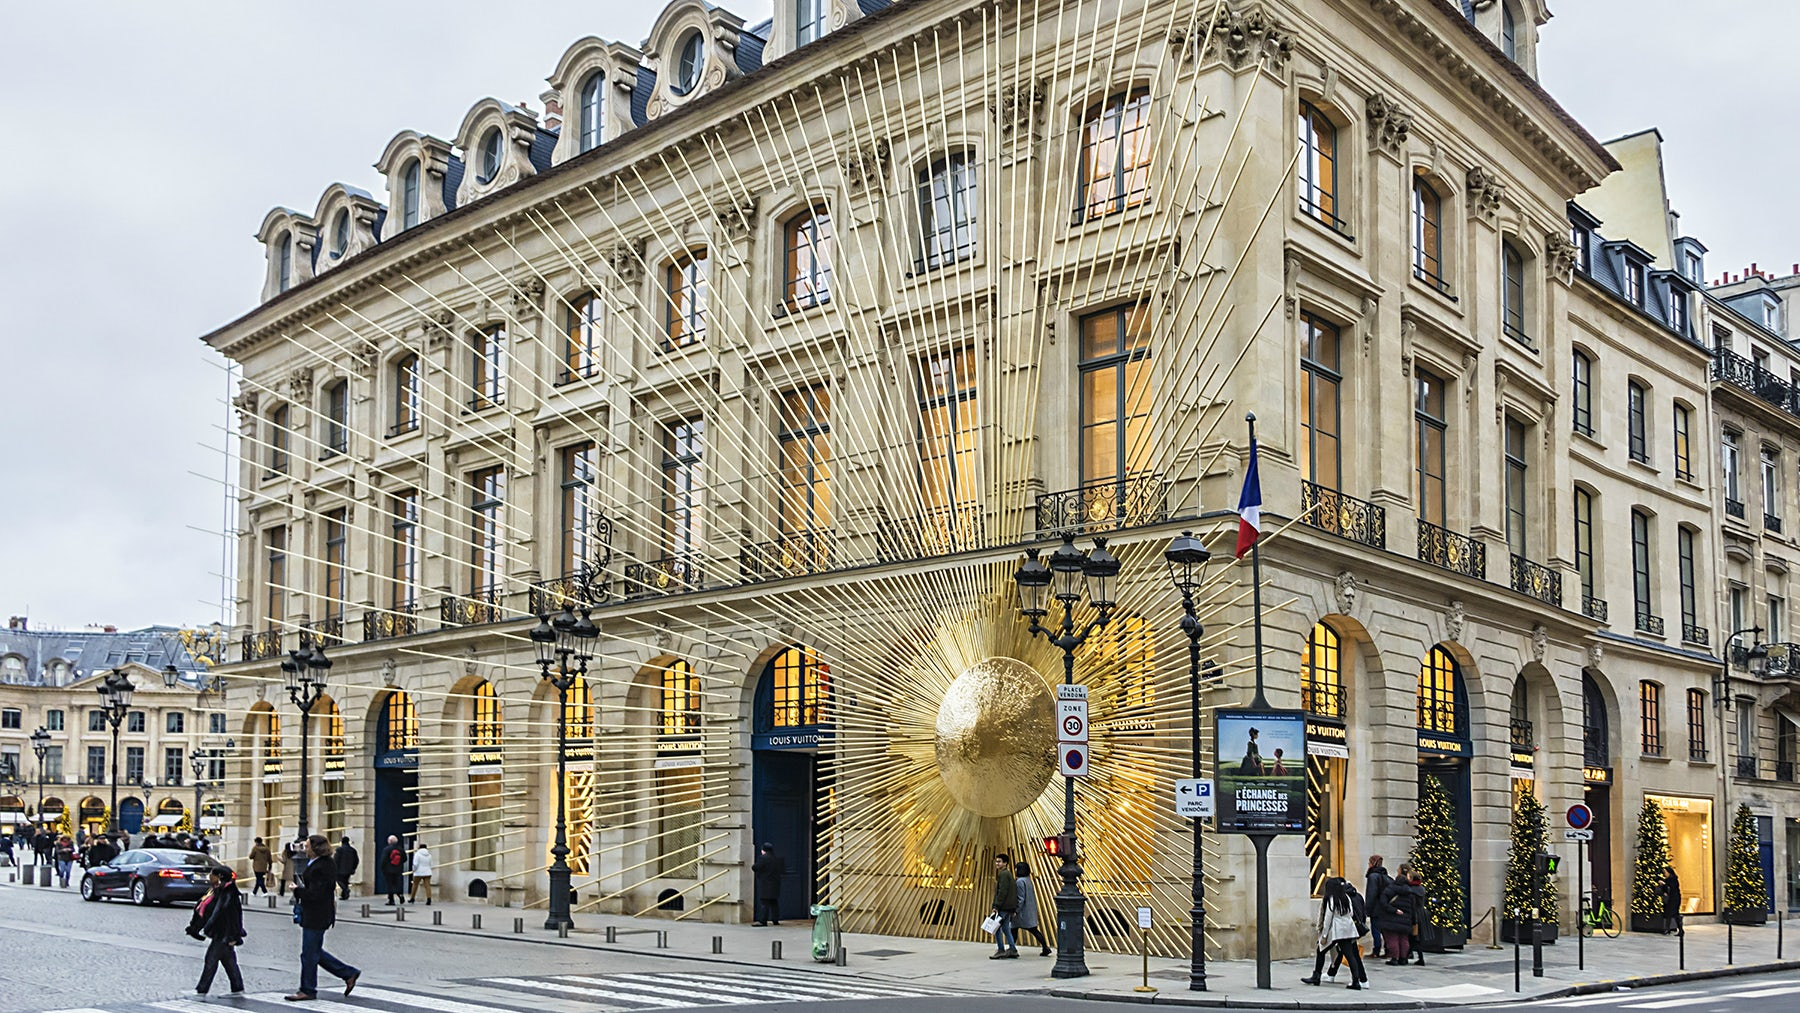 Louis Vuitton store in Paris, France | Source: Shutterstock